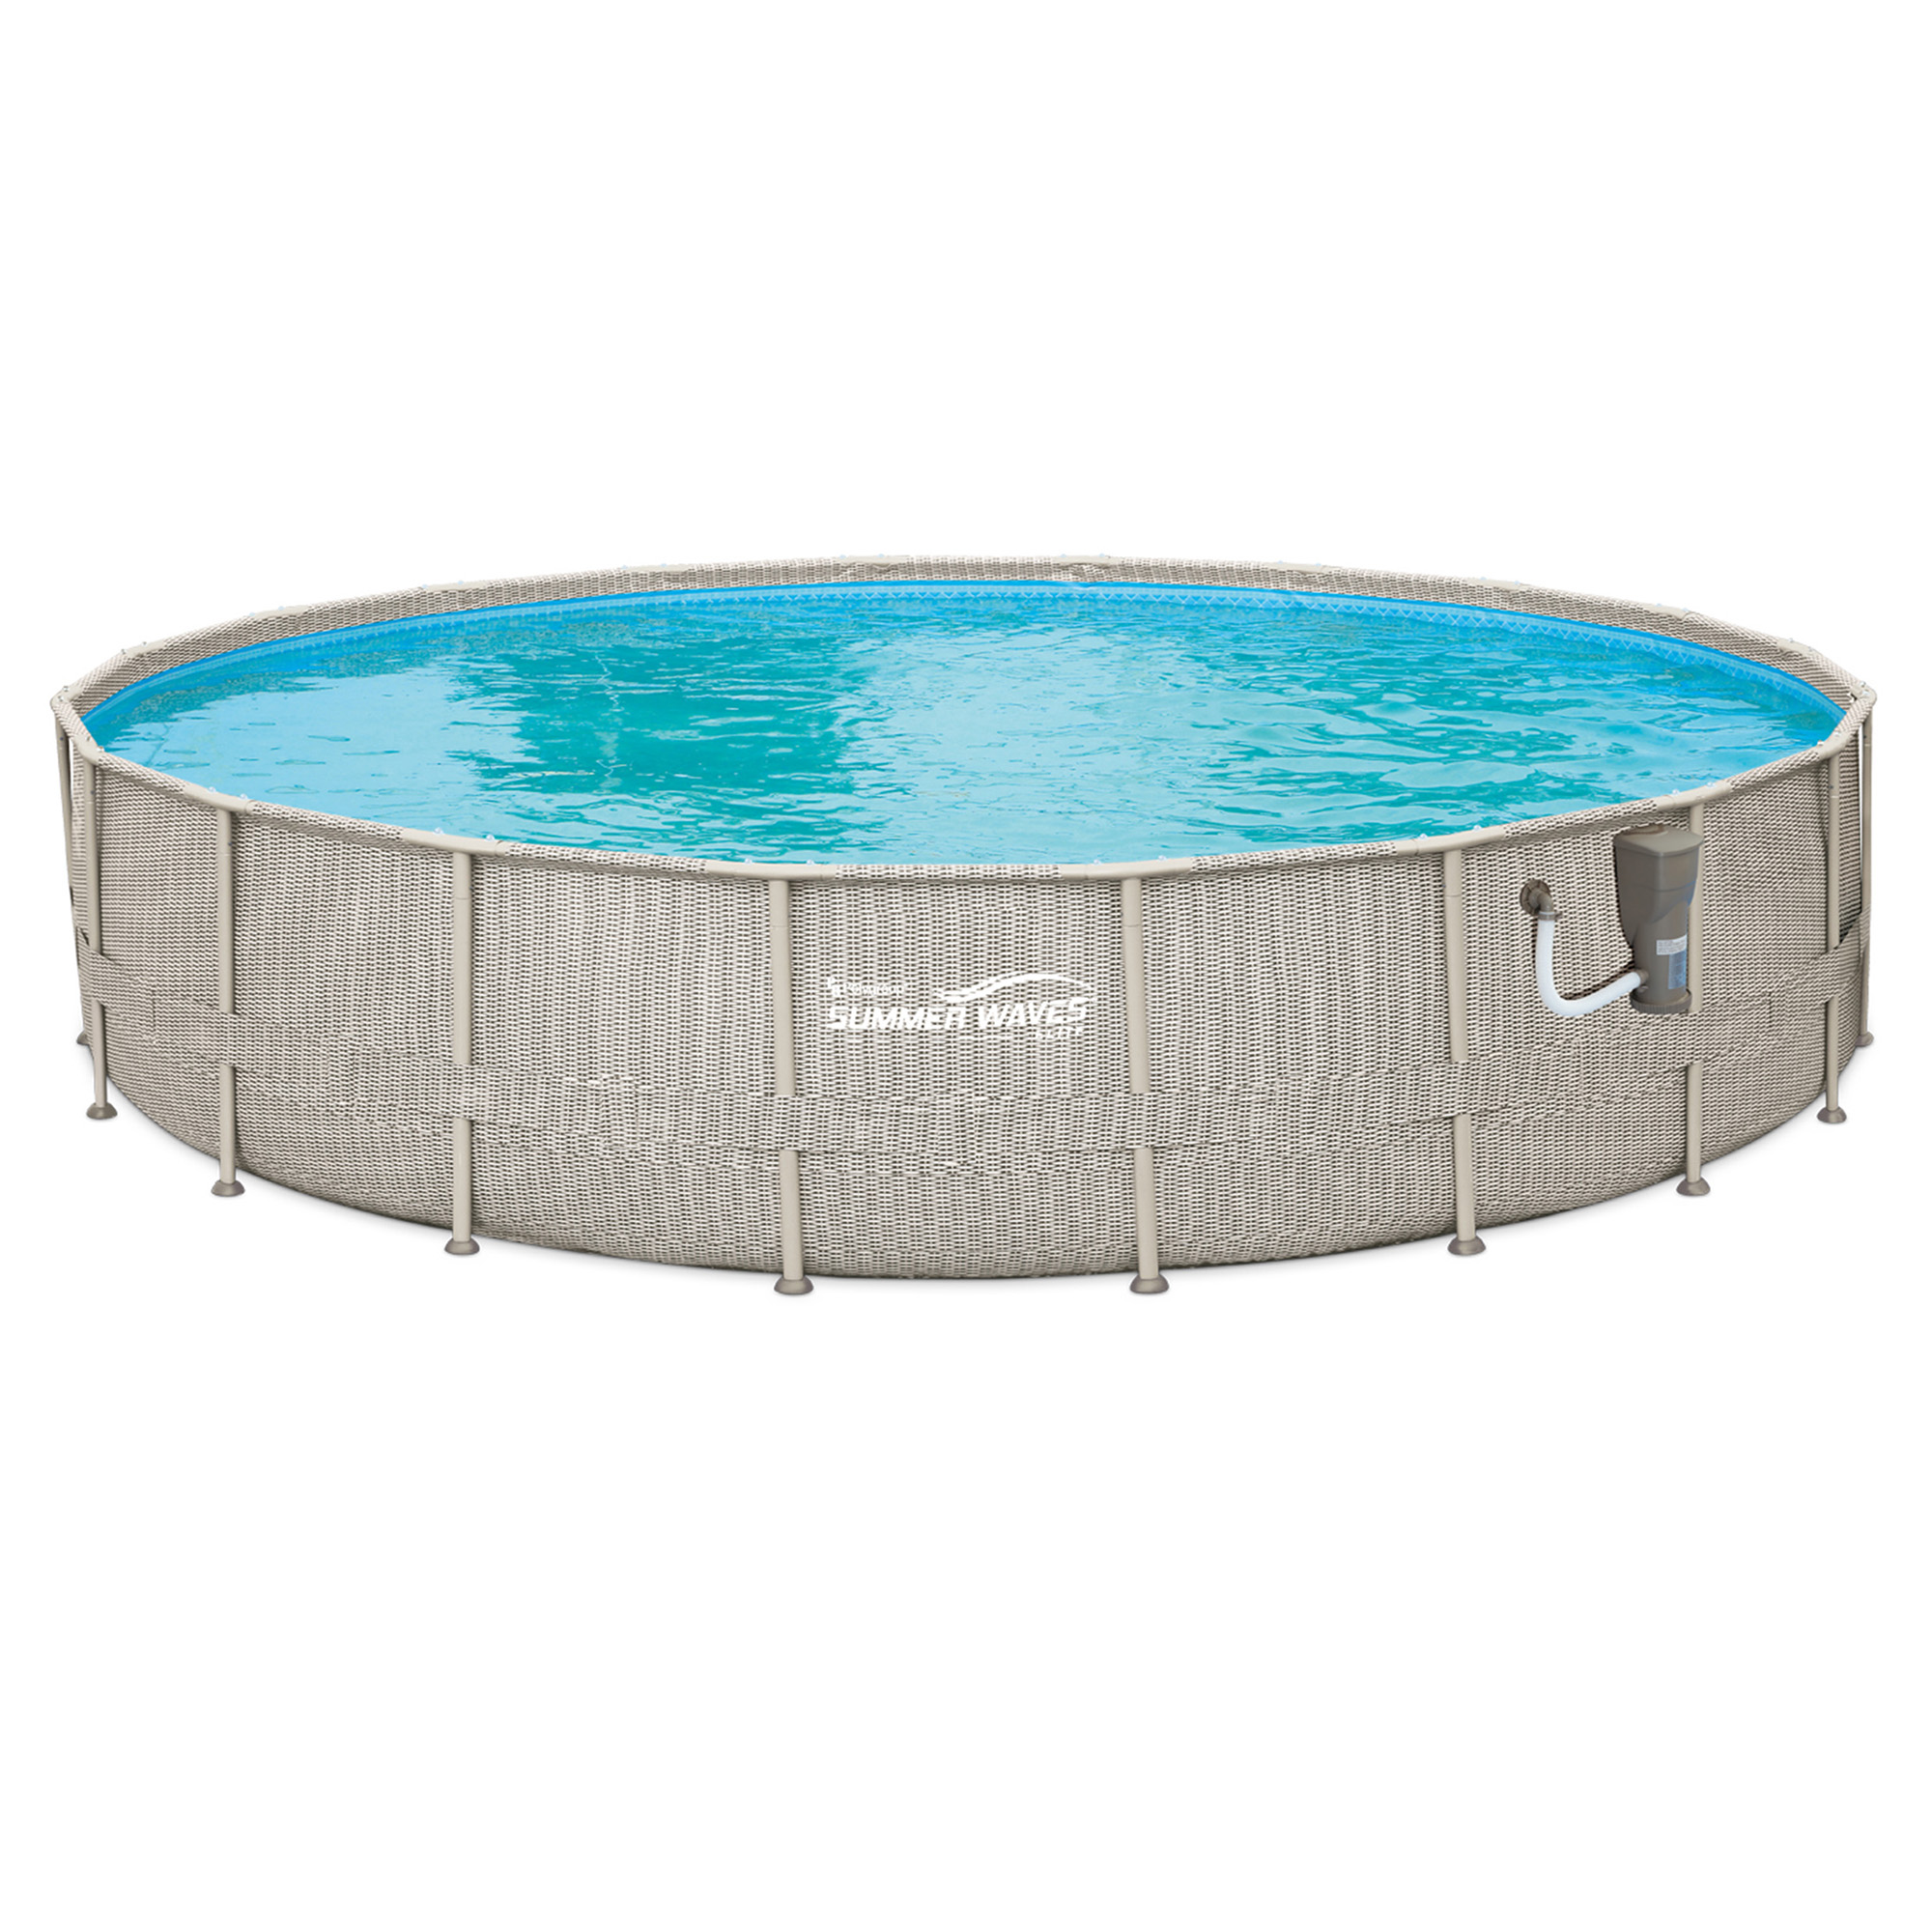 "Summer Waves 20' x 48"" Above Ground Backyard Swimming Pool Set w  Ladder & Cover by Summer Waves"